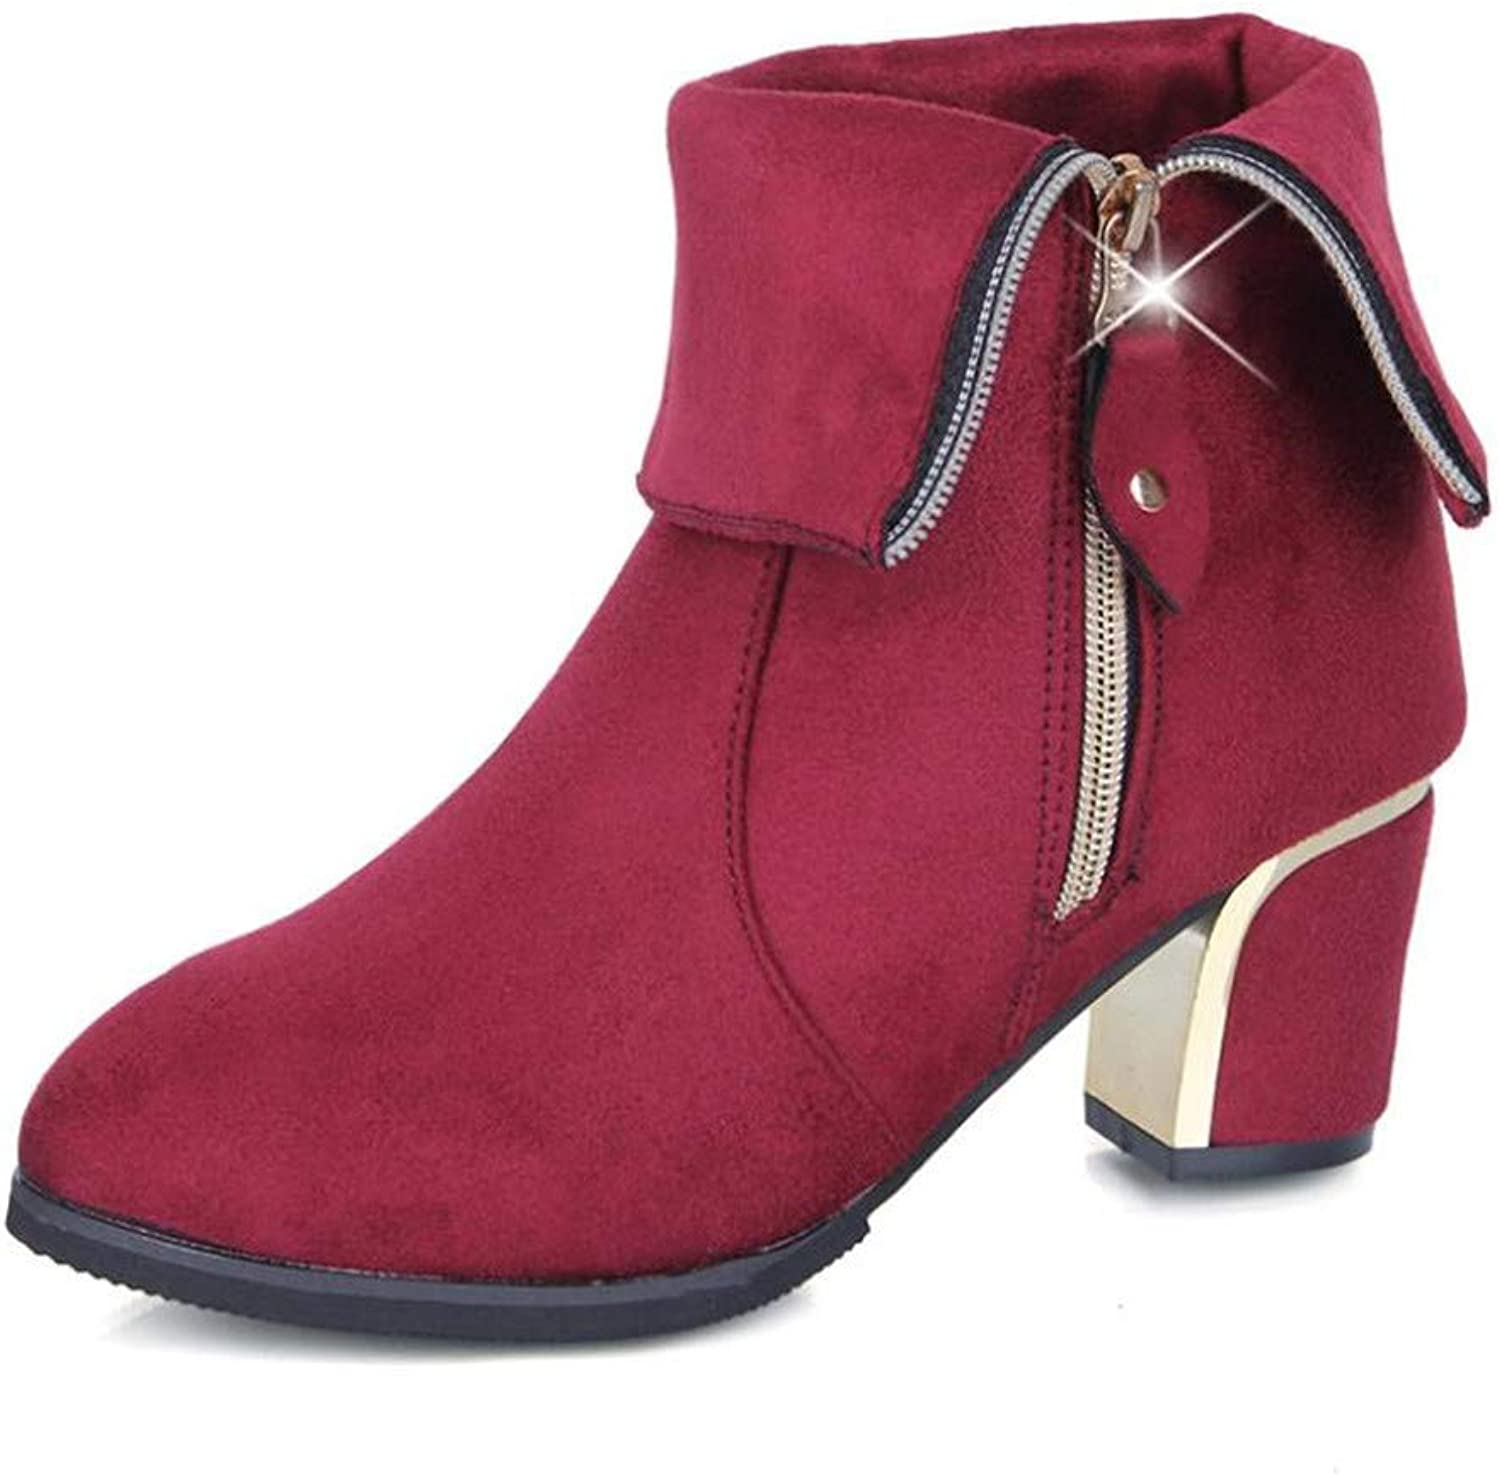 Gusha Women's Two Boots Foldable Mid Boots High Heel Martin Boots